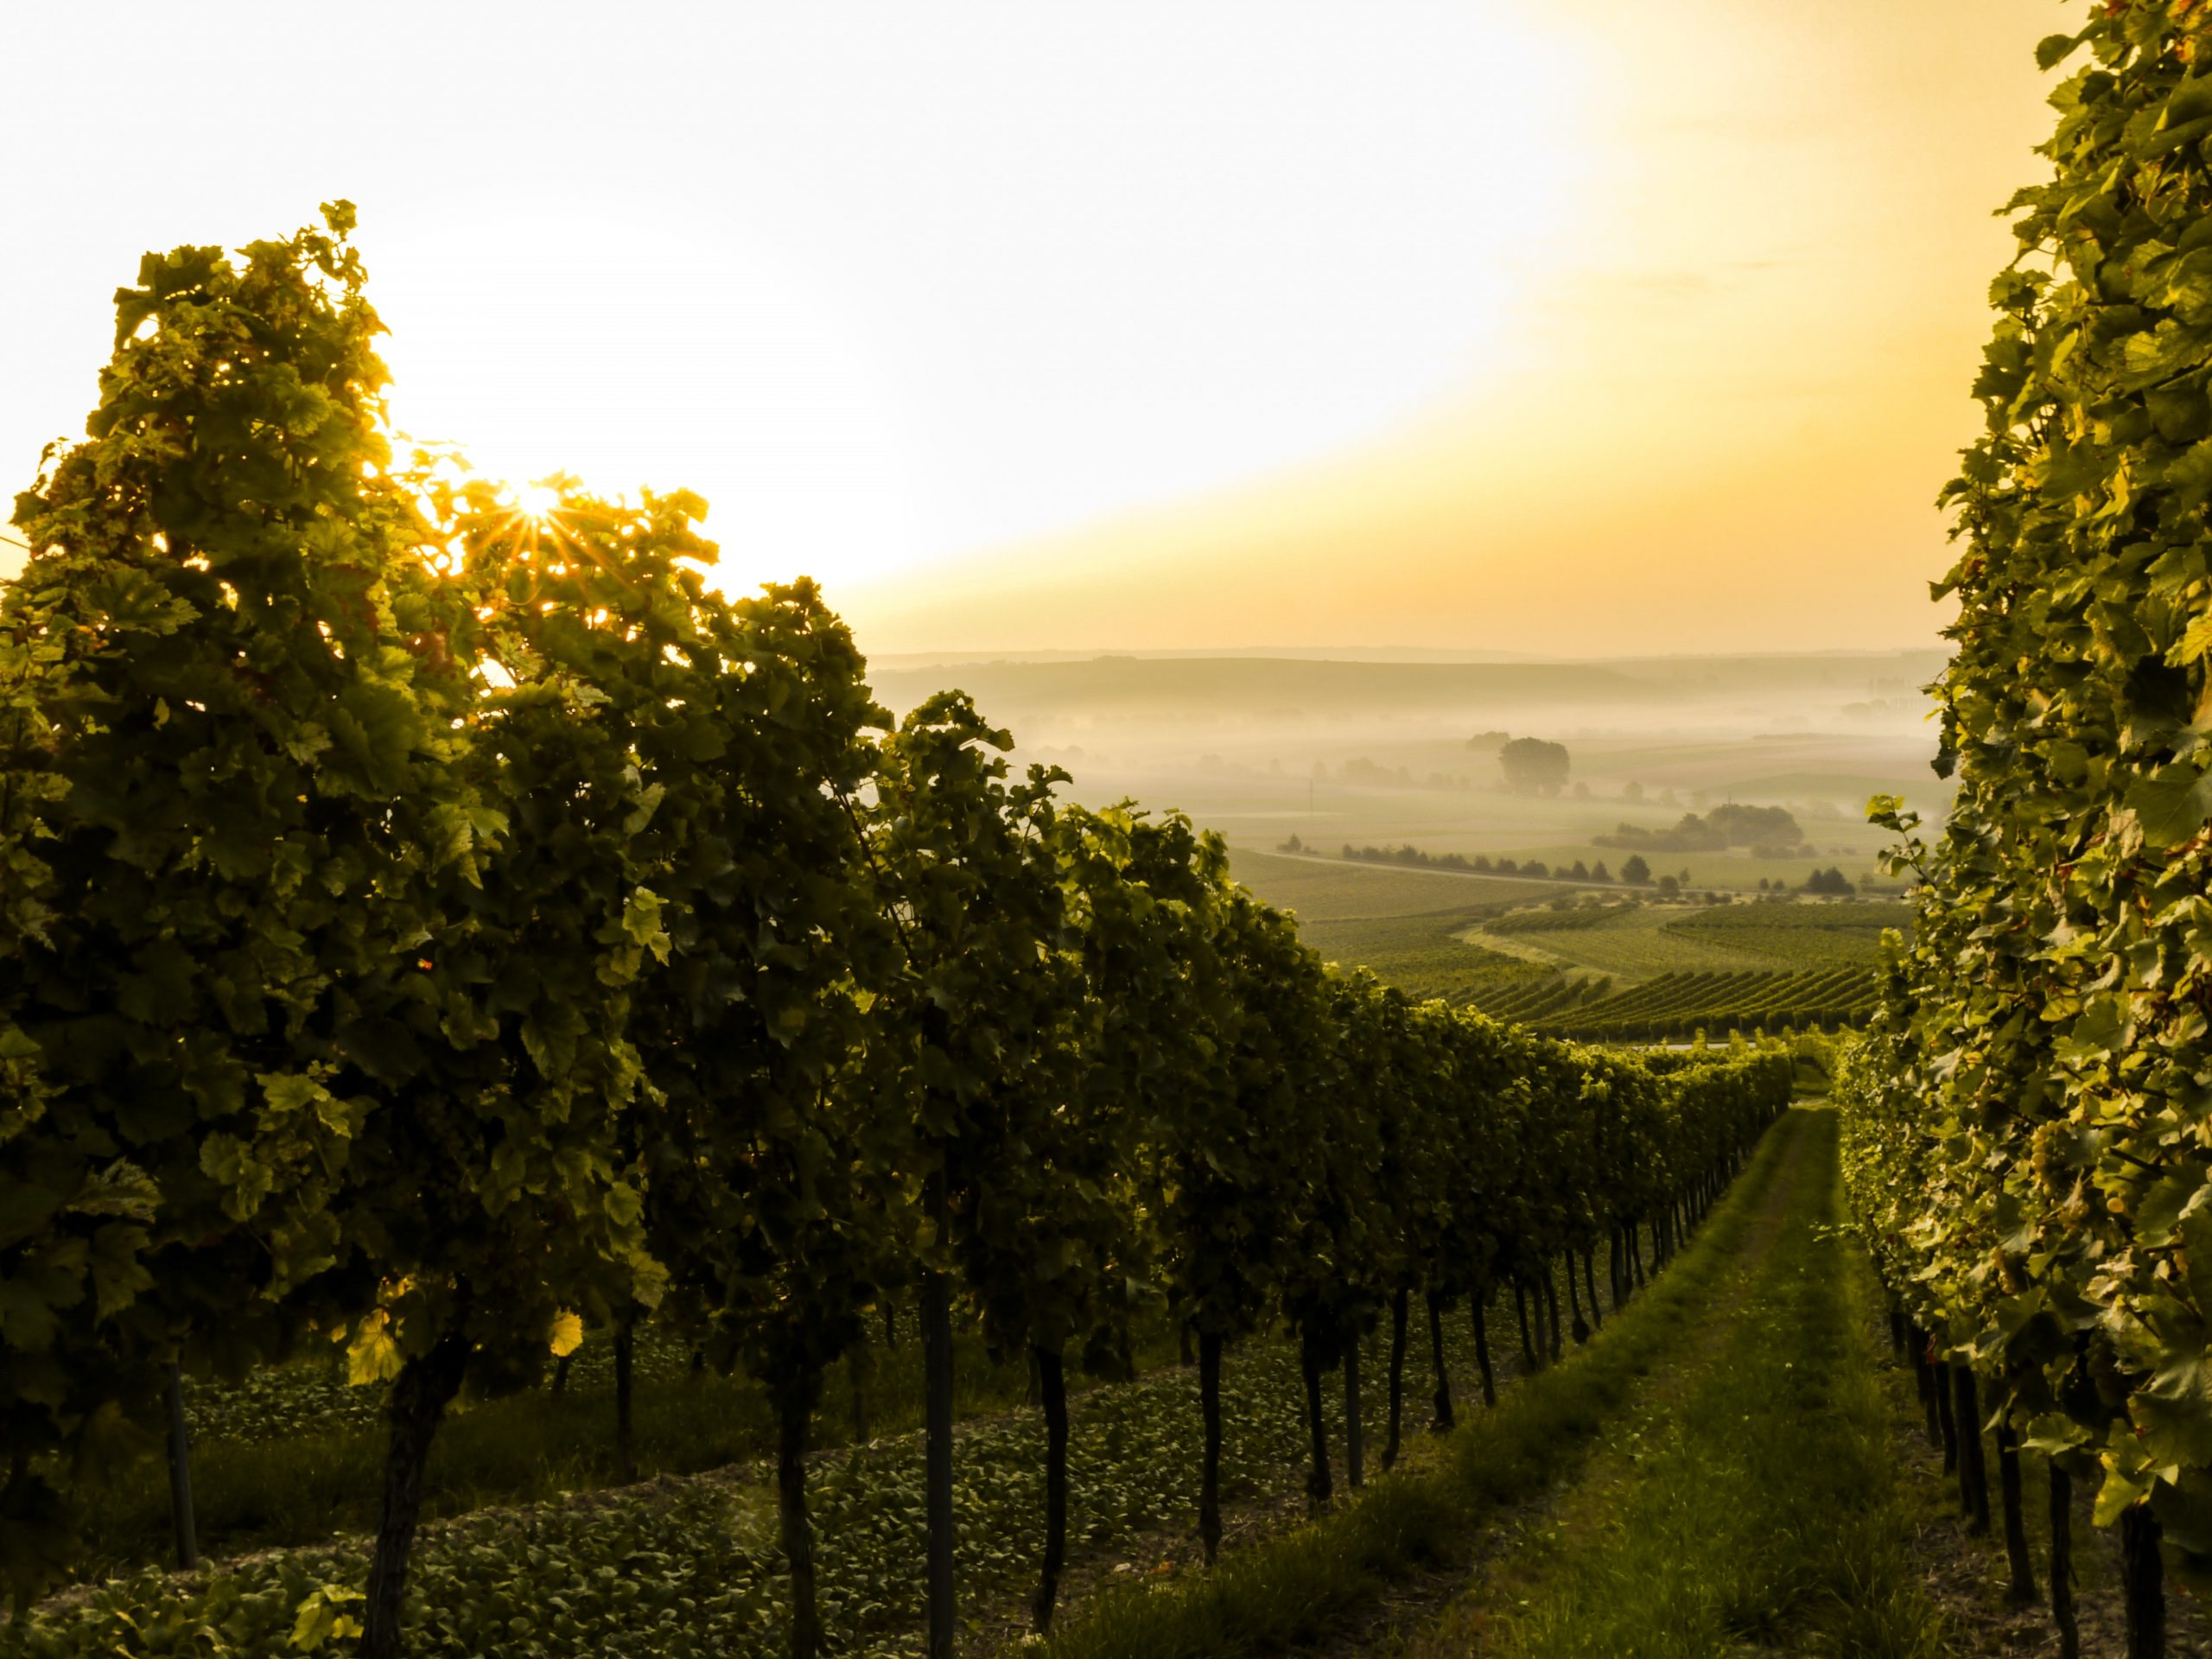 Autumn days in the vineyard. Image: Sven Wilhelm / Unsplash